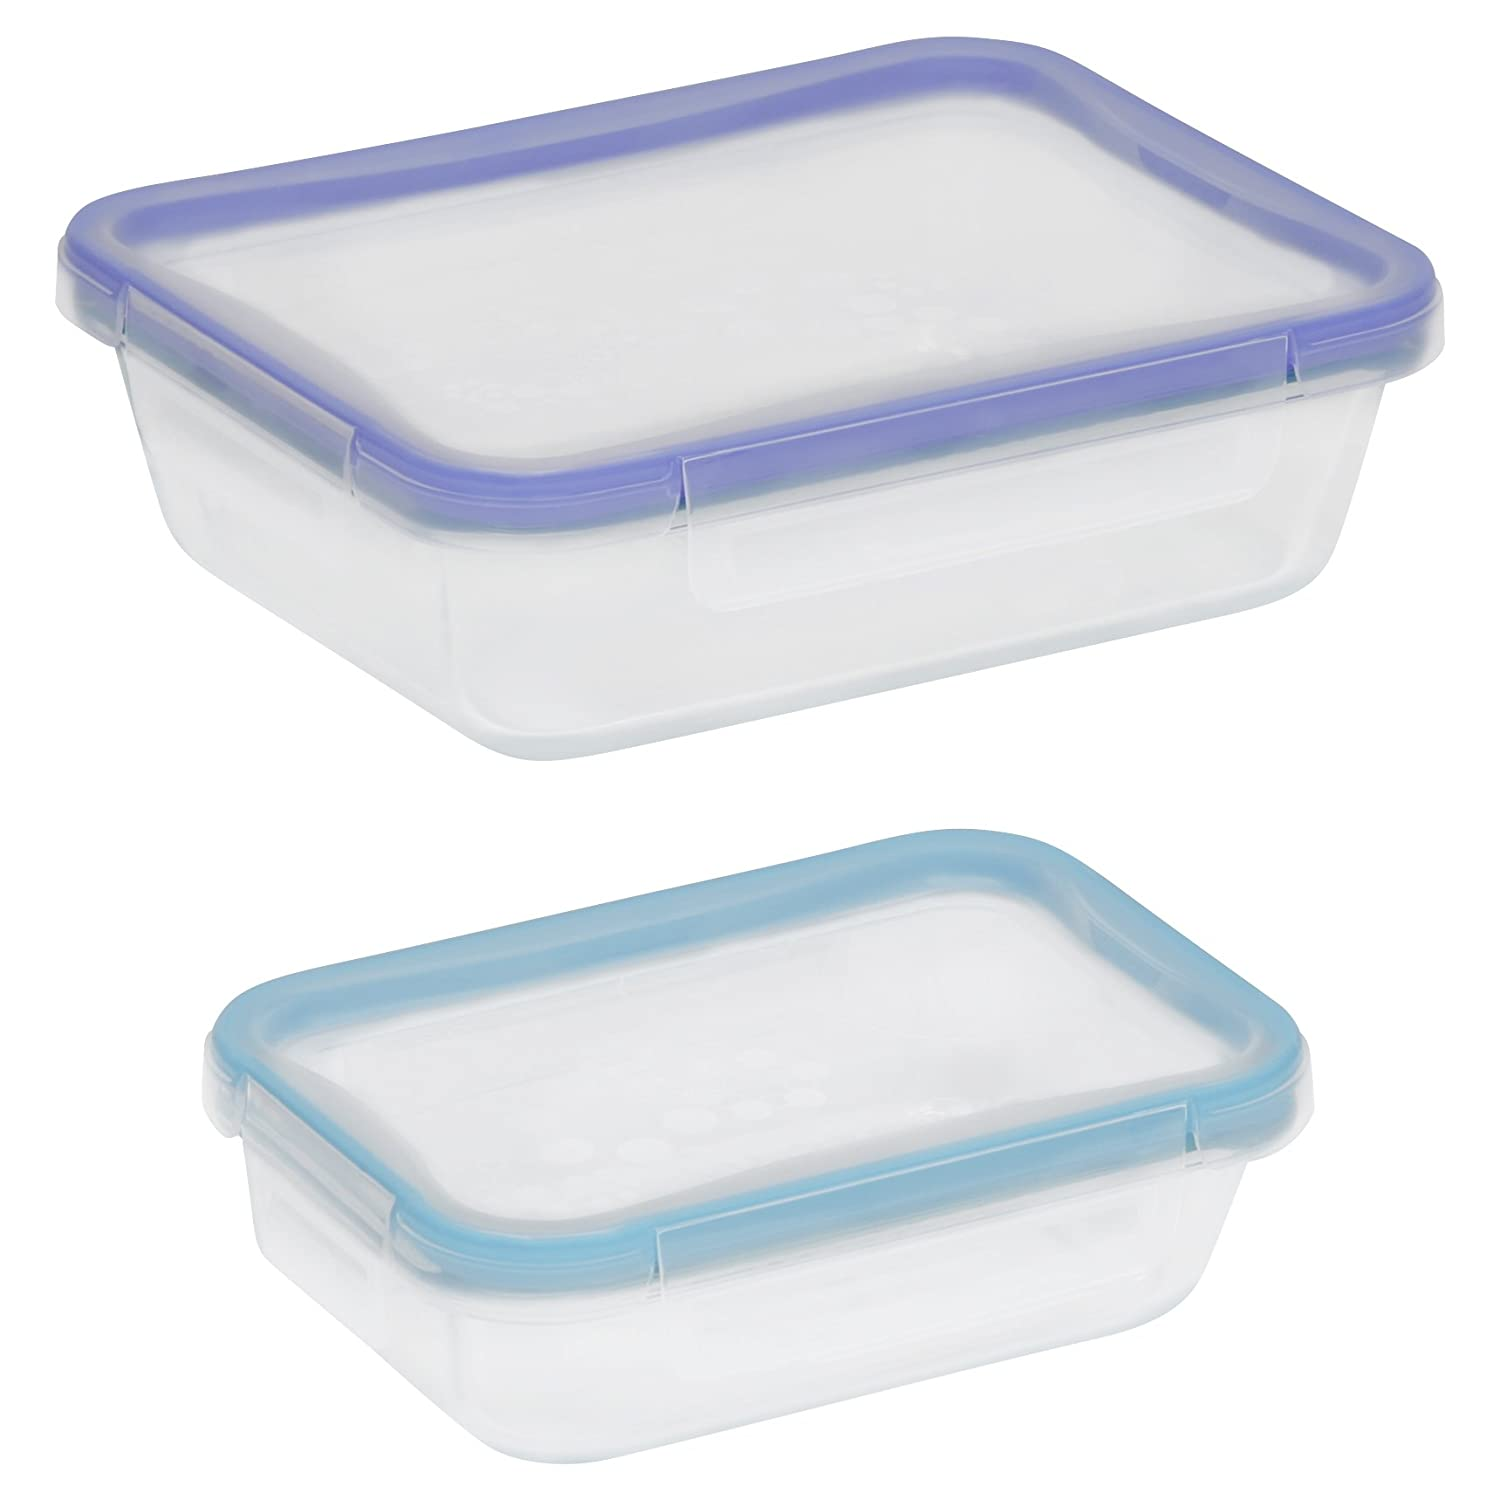 Snapware4-Piece Total Solution Rectangle Food Storage Set, Glass